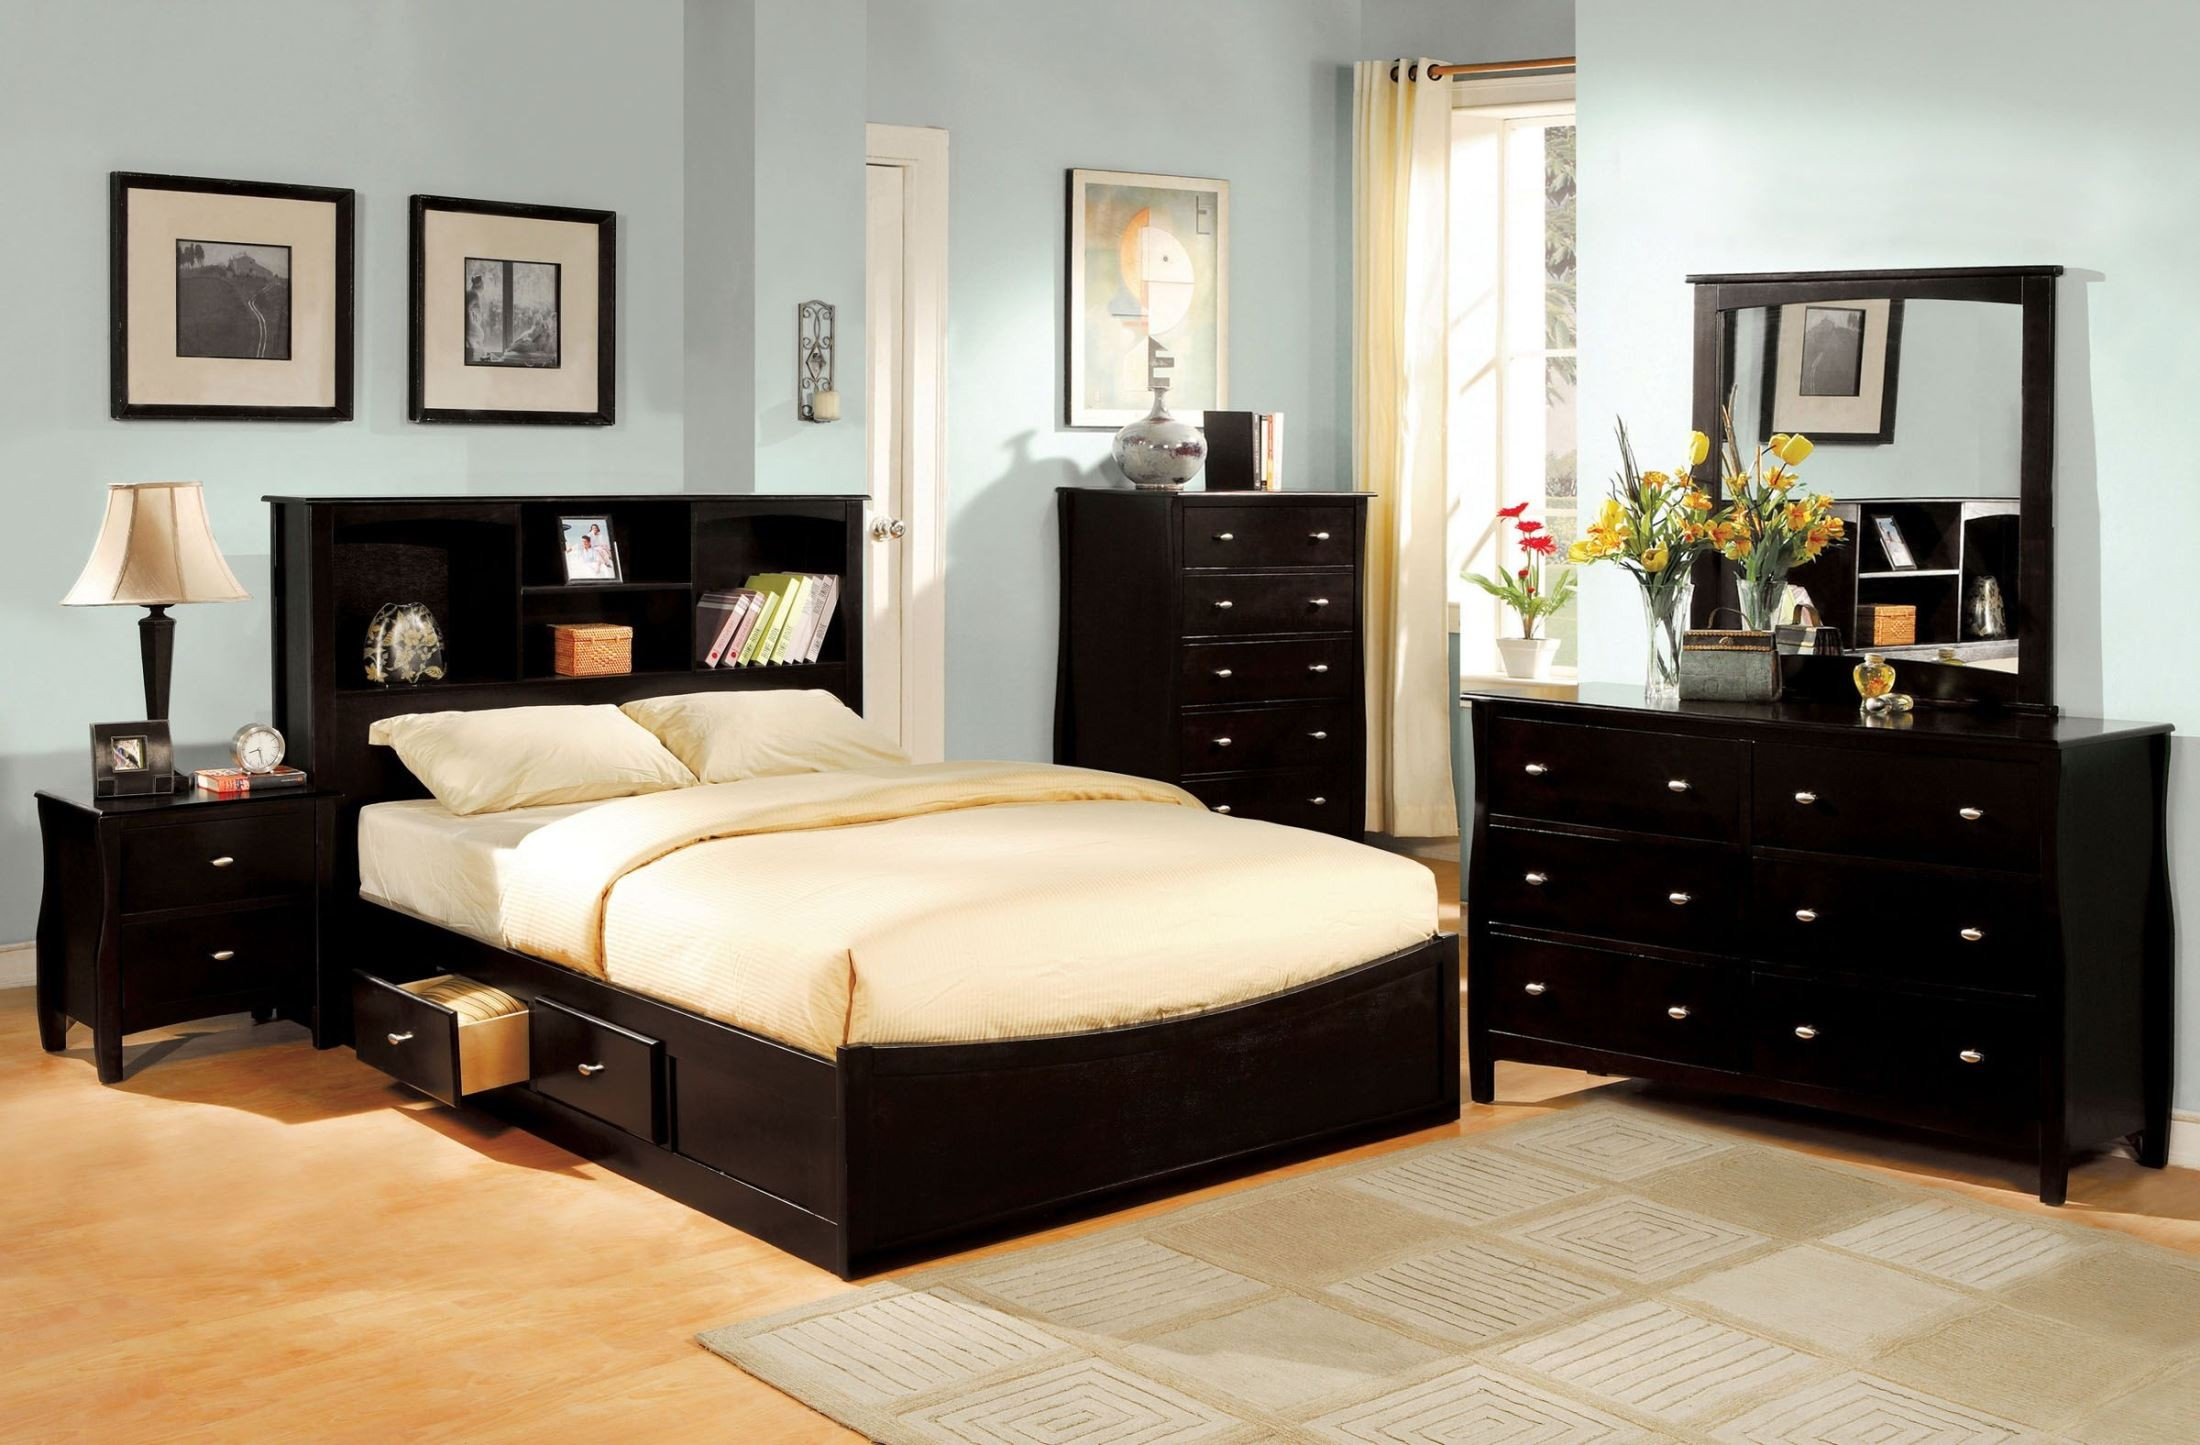 Brooklyn espresso youth platform bookcase bedroom set from for Brooklyn bedding sale